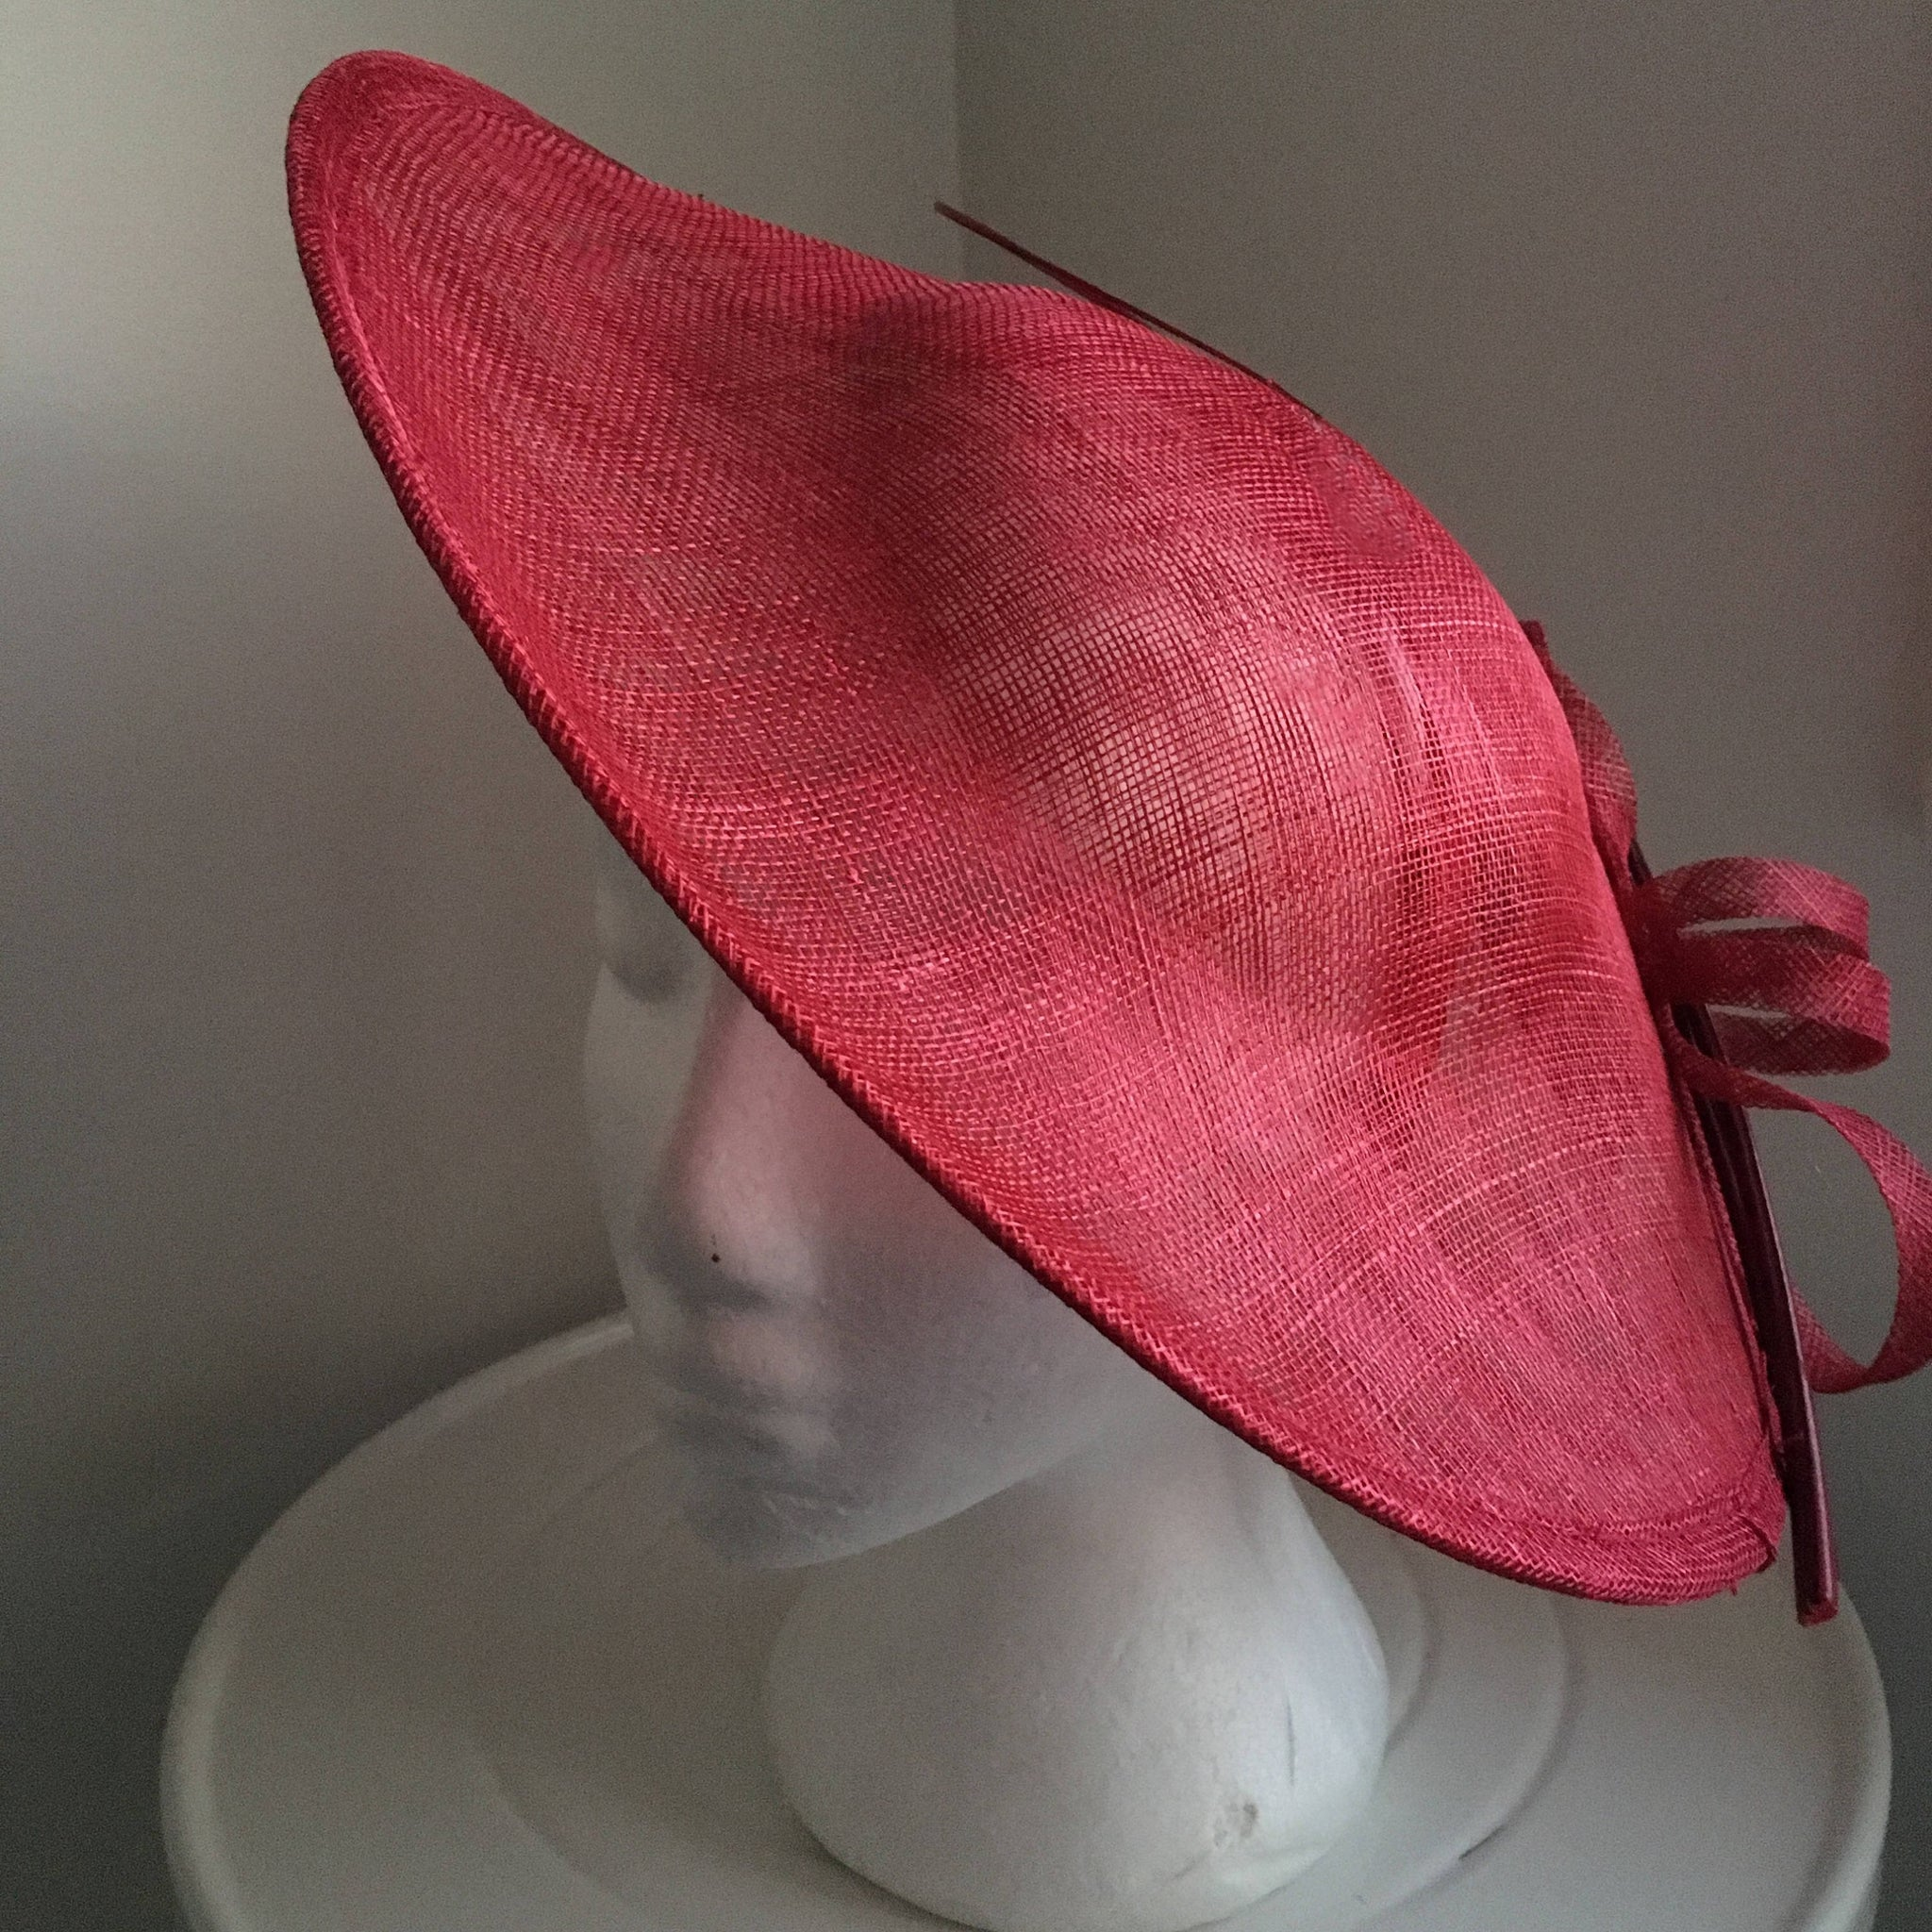 SALE Item* Lydia Maroon/ Cherry Fascinator, Kentucky Derby Fascinator, Royal Wedding Hat Maroon, Saucer Hat Cherry Red, Tea-Party Fascinator Hat, Spring Racing, Hatinator